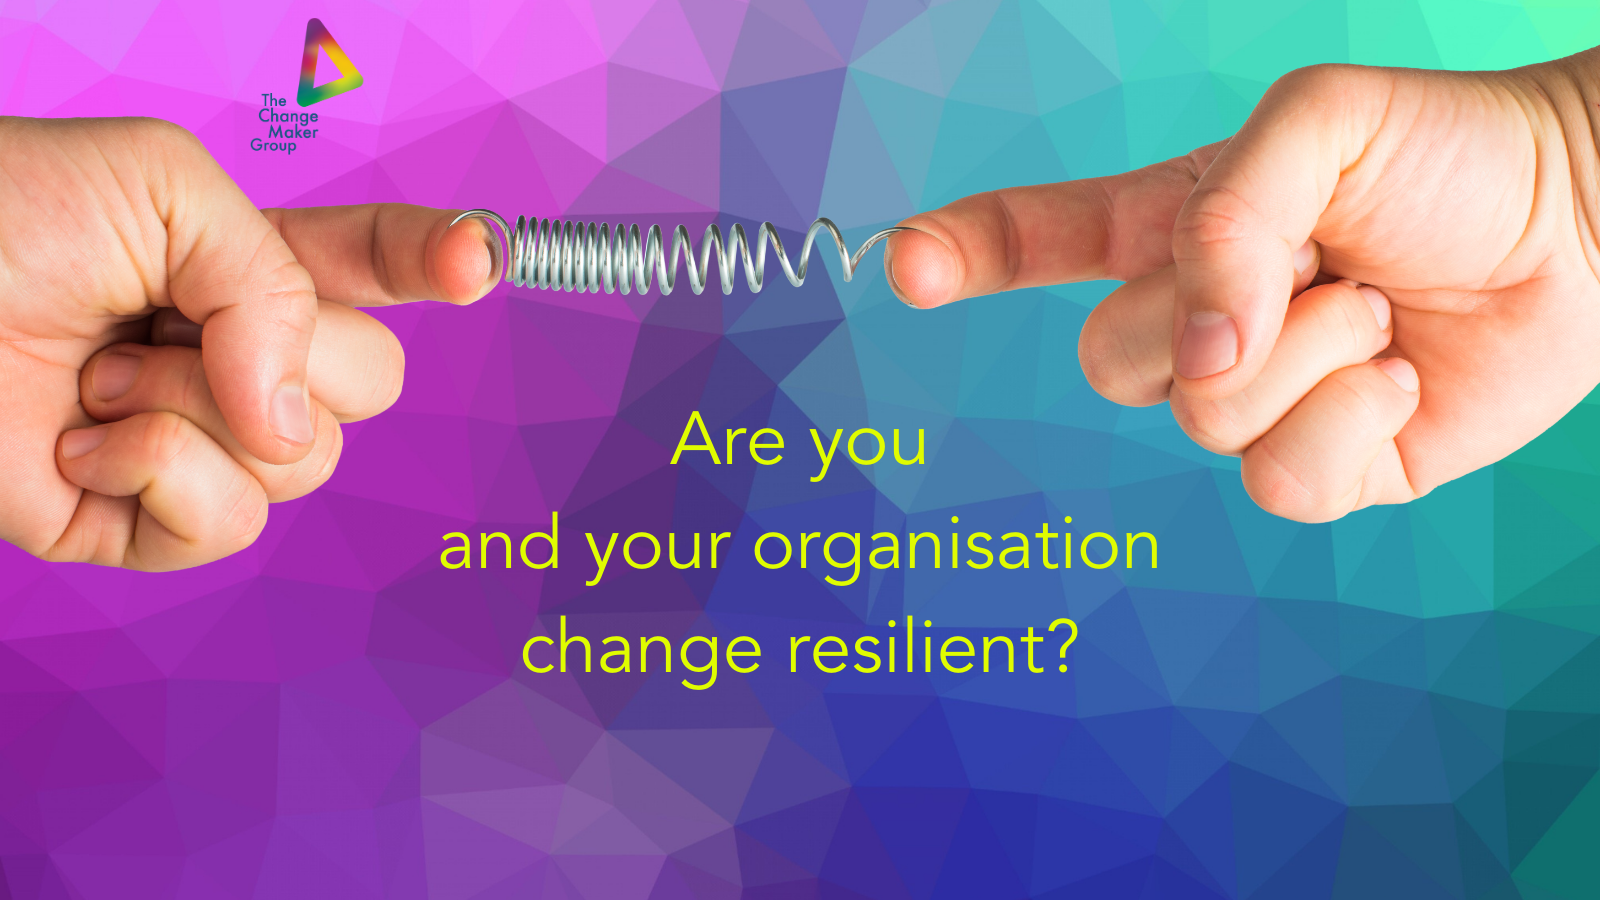 Are you and your organisation change resilient?